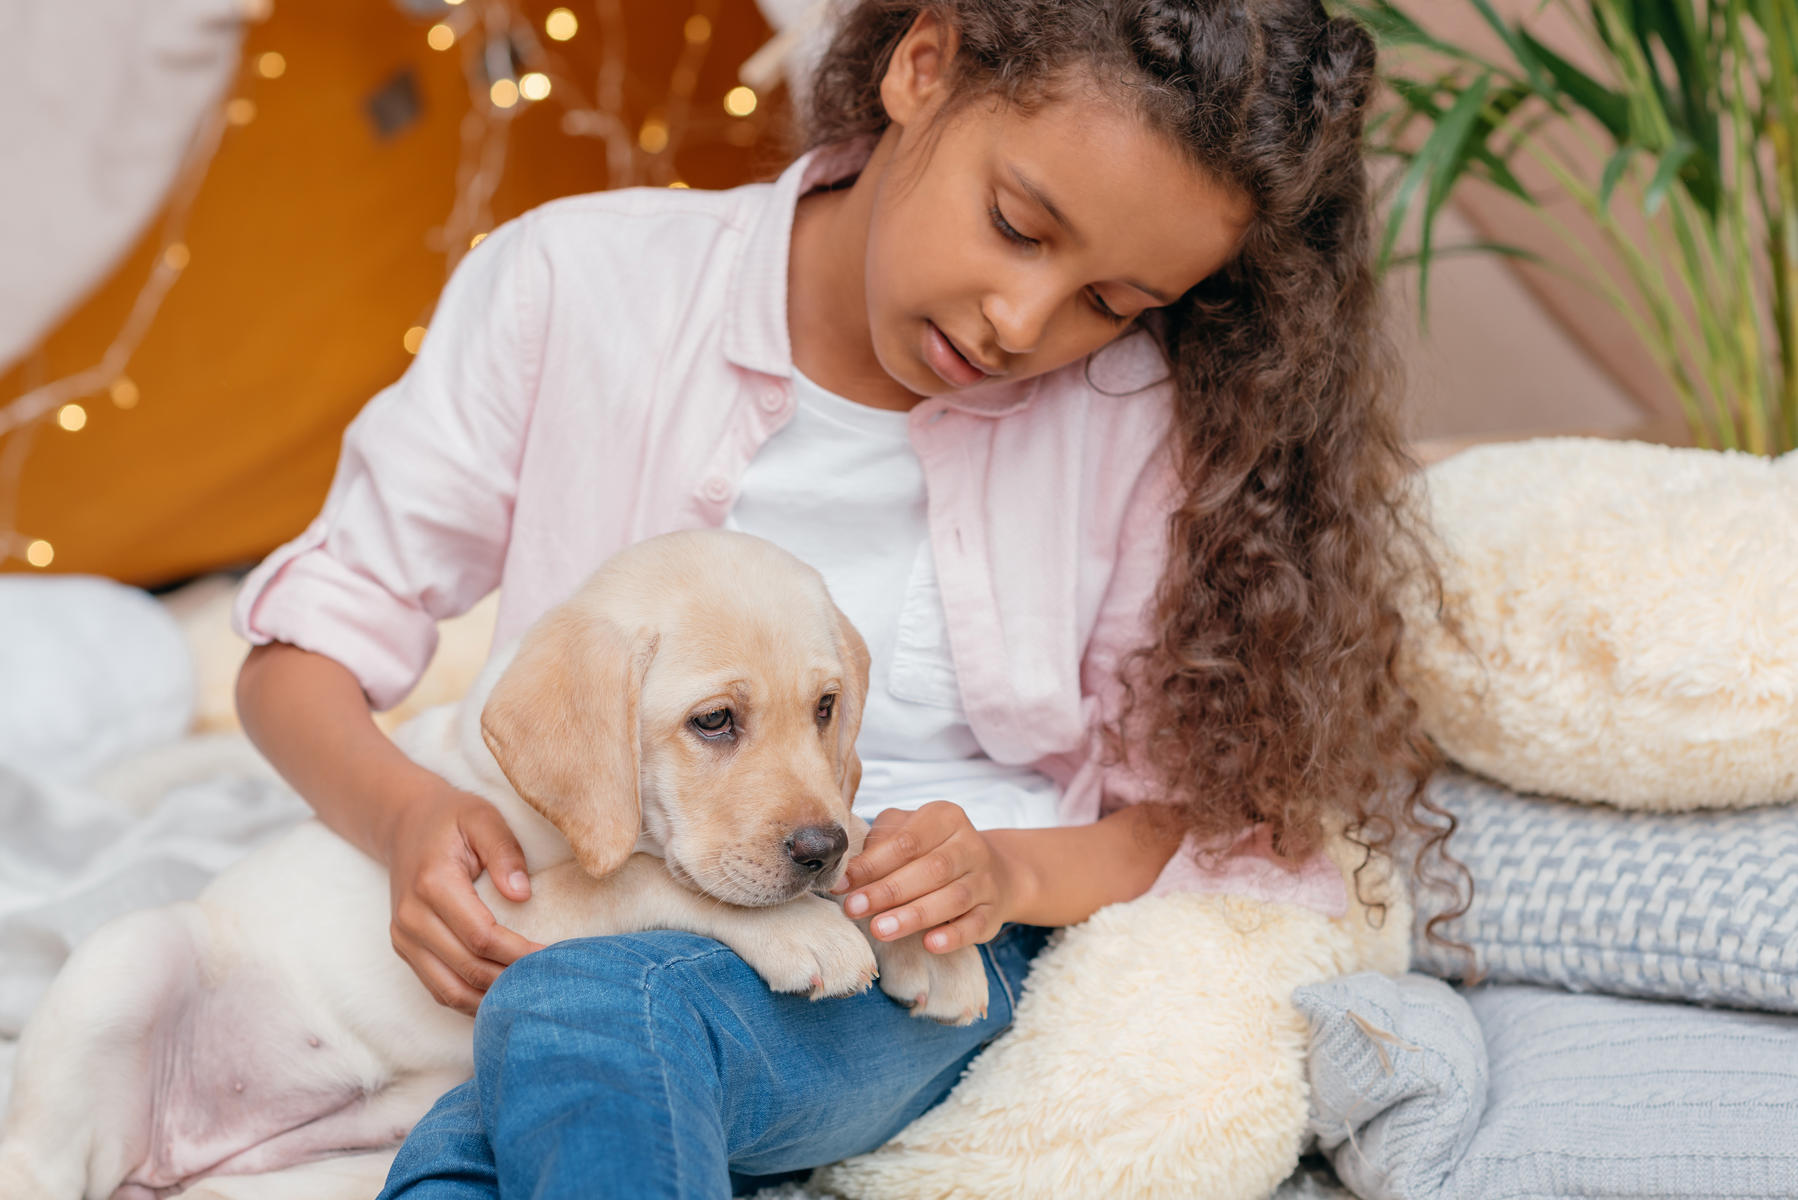 10 Tips for Bringing Your New Pet Home